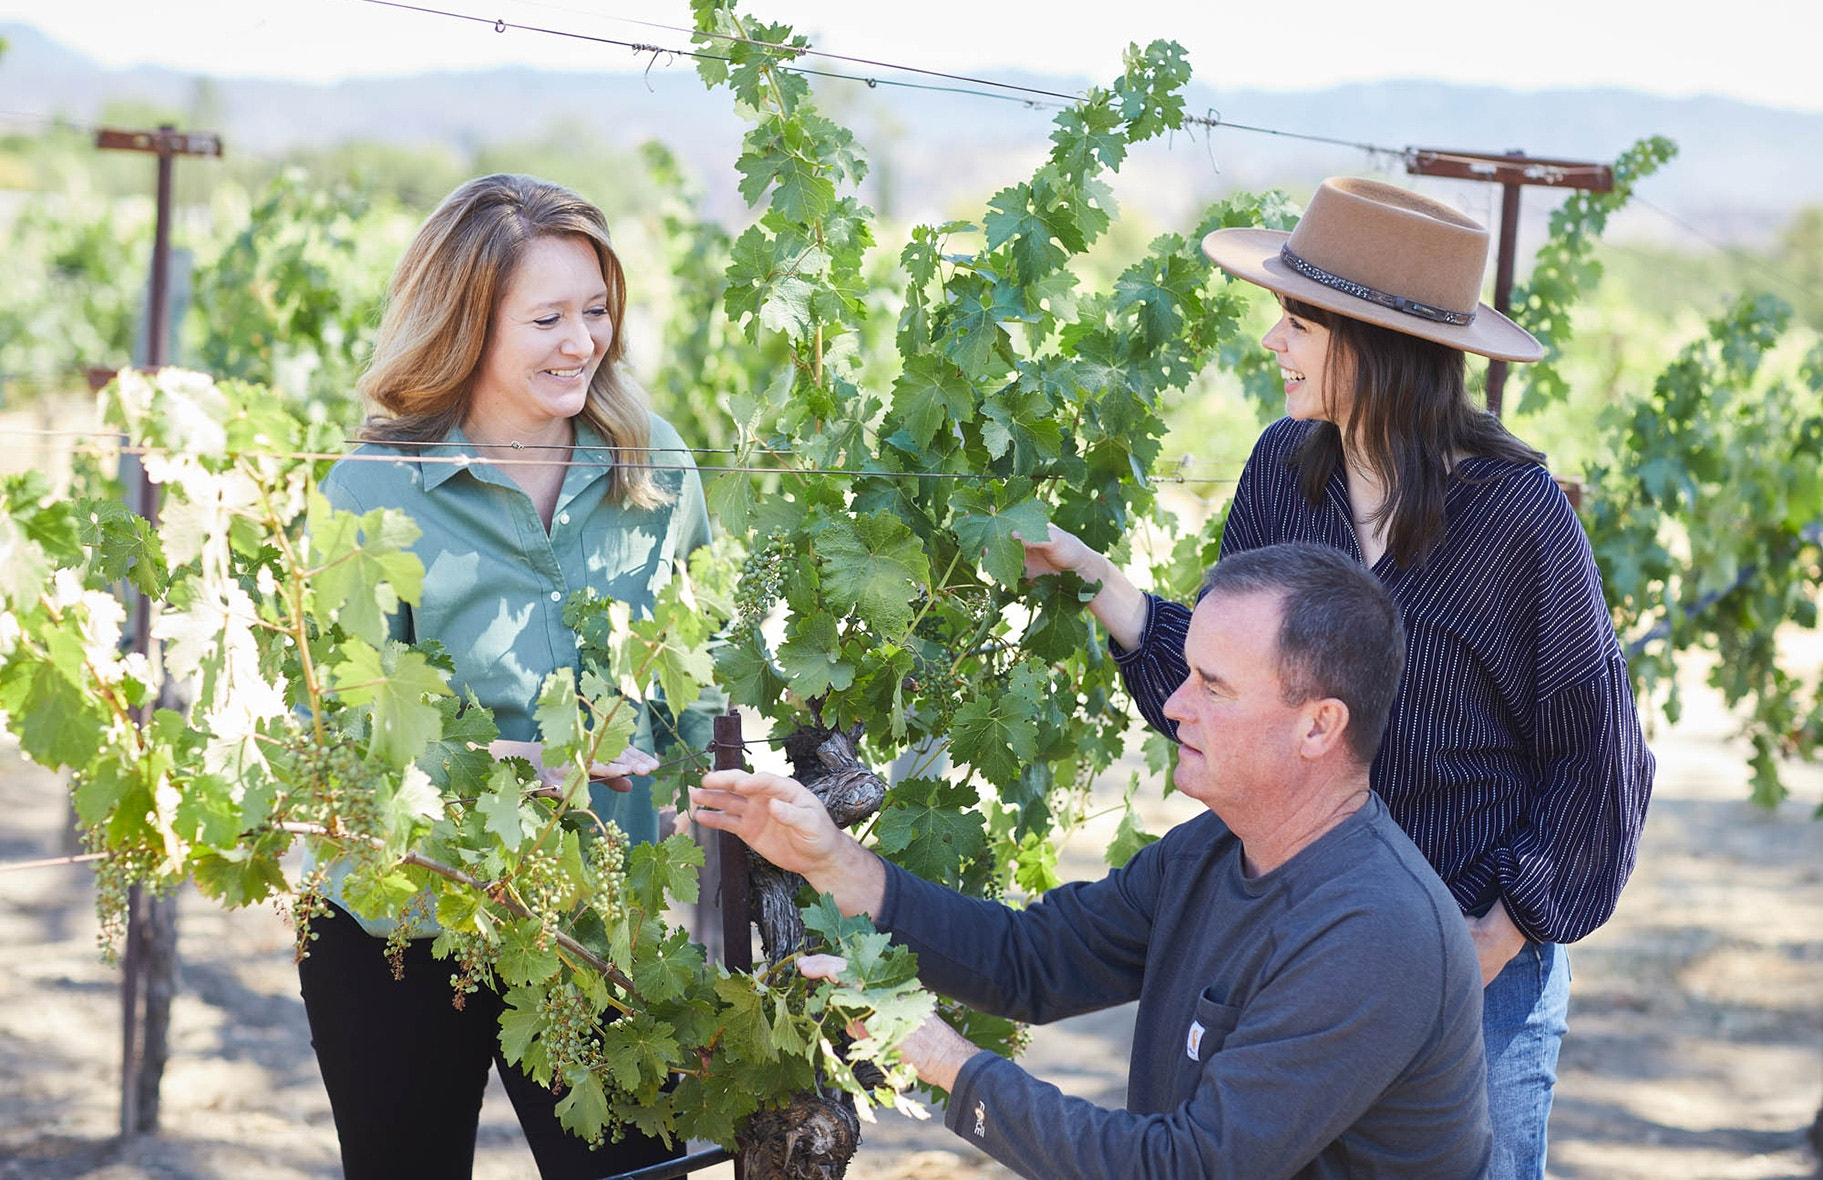 Winemakers Megan Gunderson, Alison Frichtl-Hollis and Viticulturist Don Monk looking at grape vines image